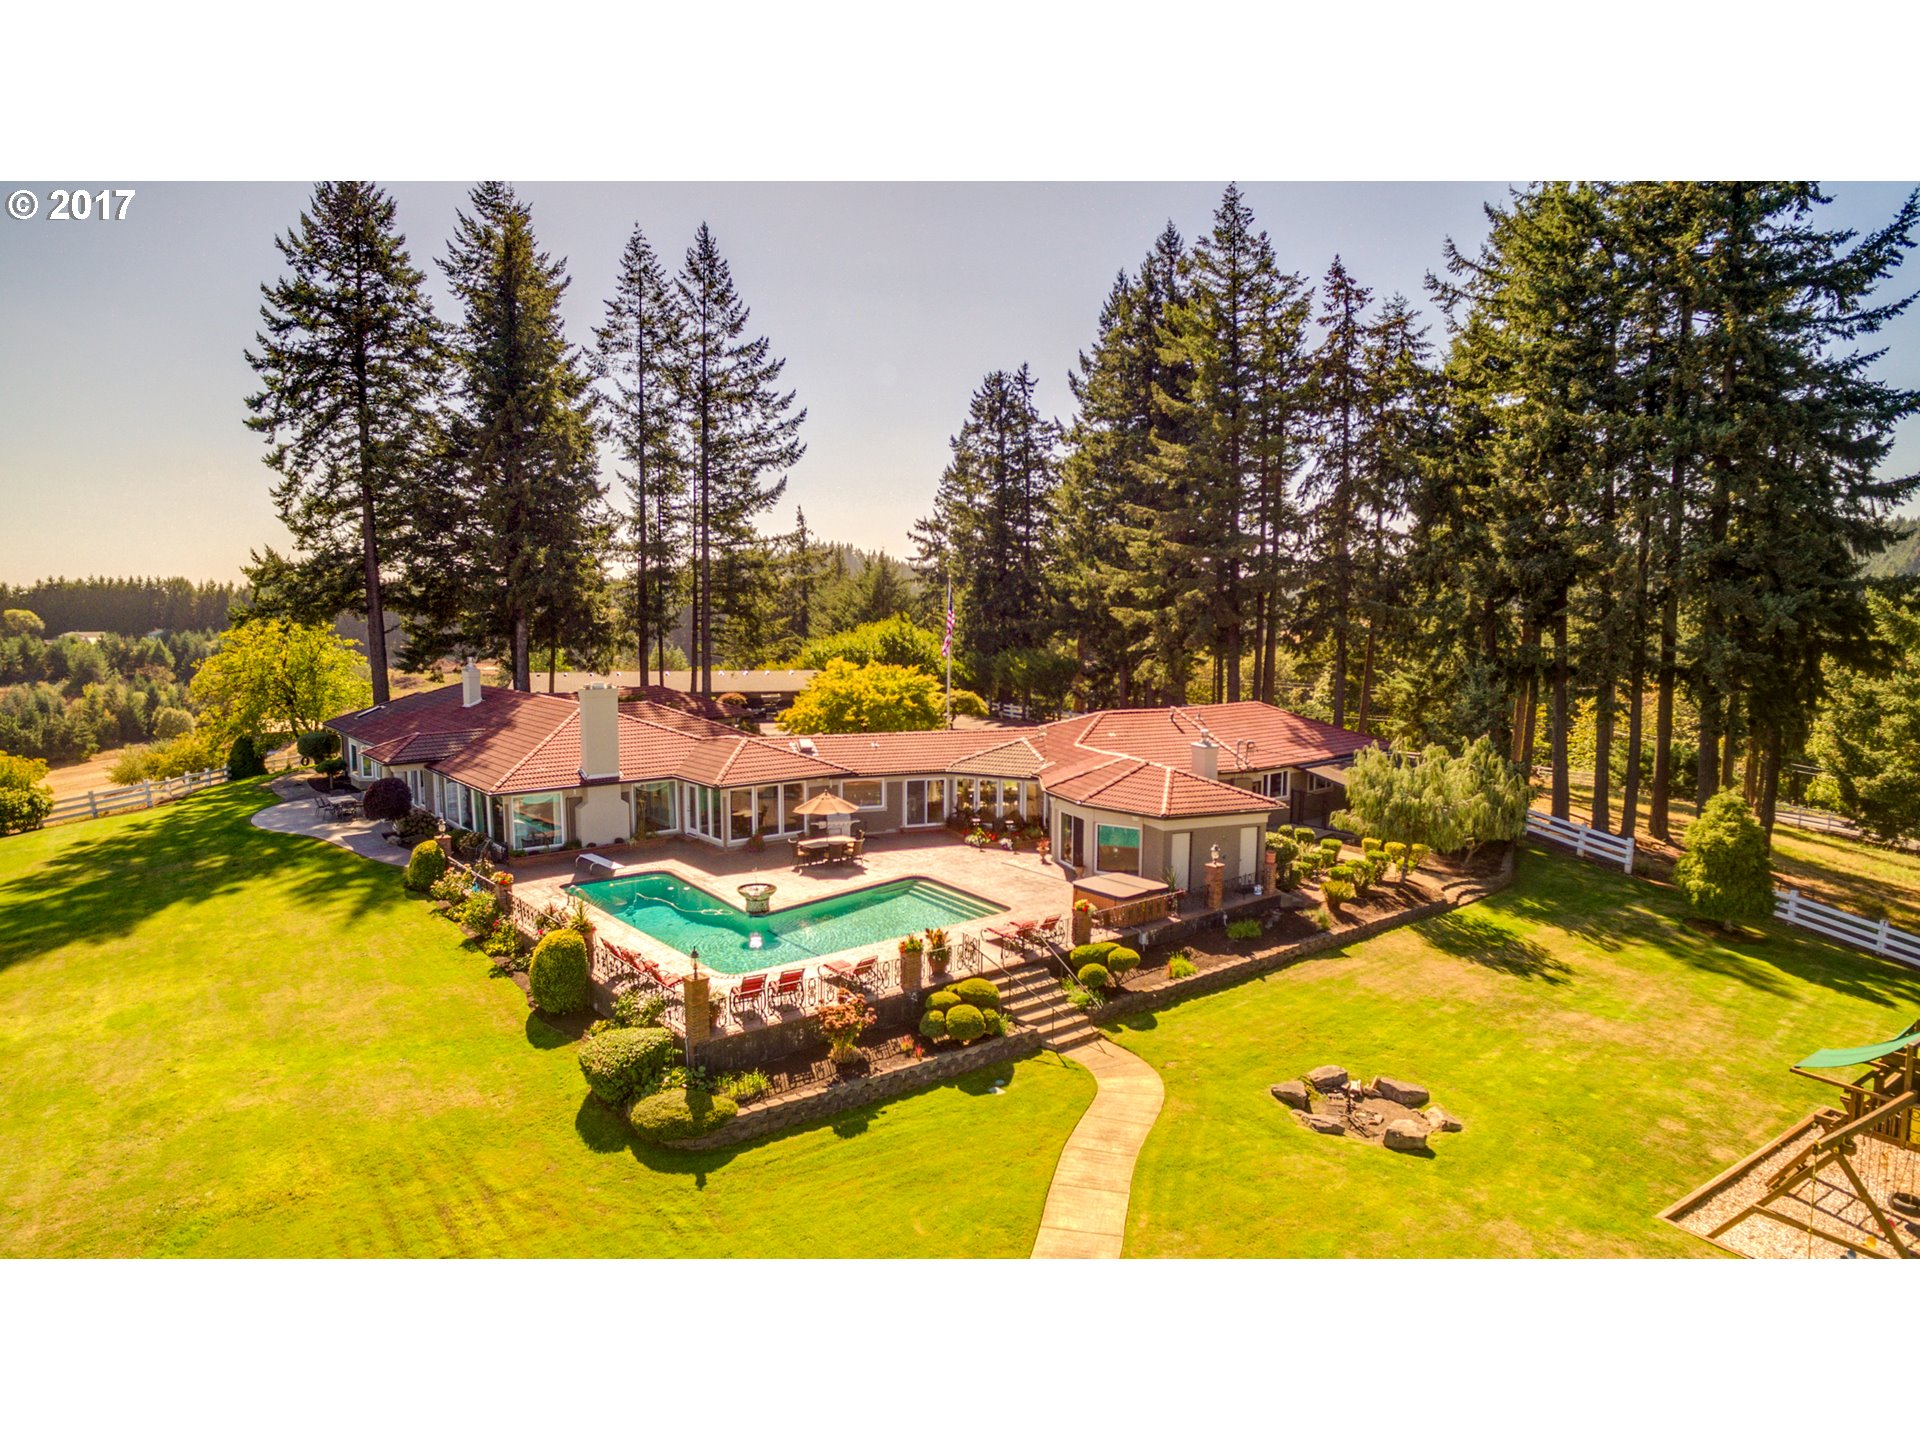 22345 Sw Chapman Rd, Sherwood, OR 97140